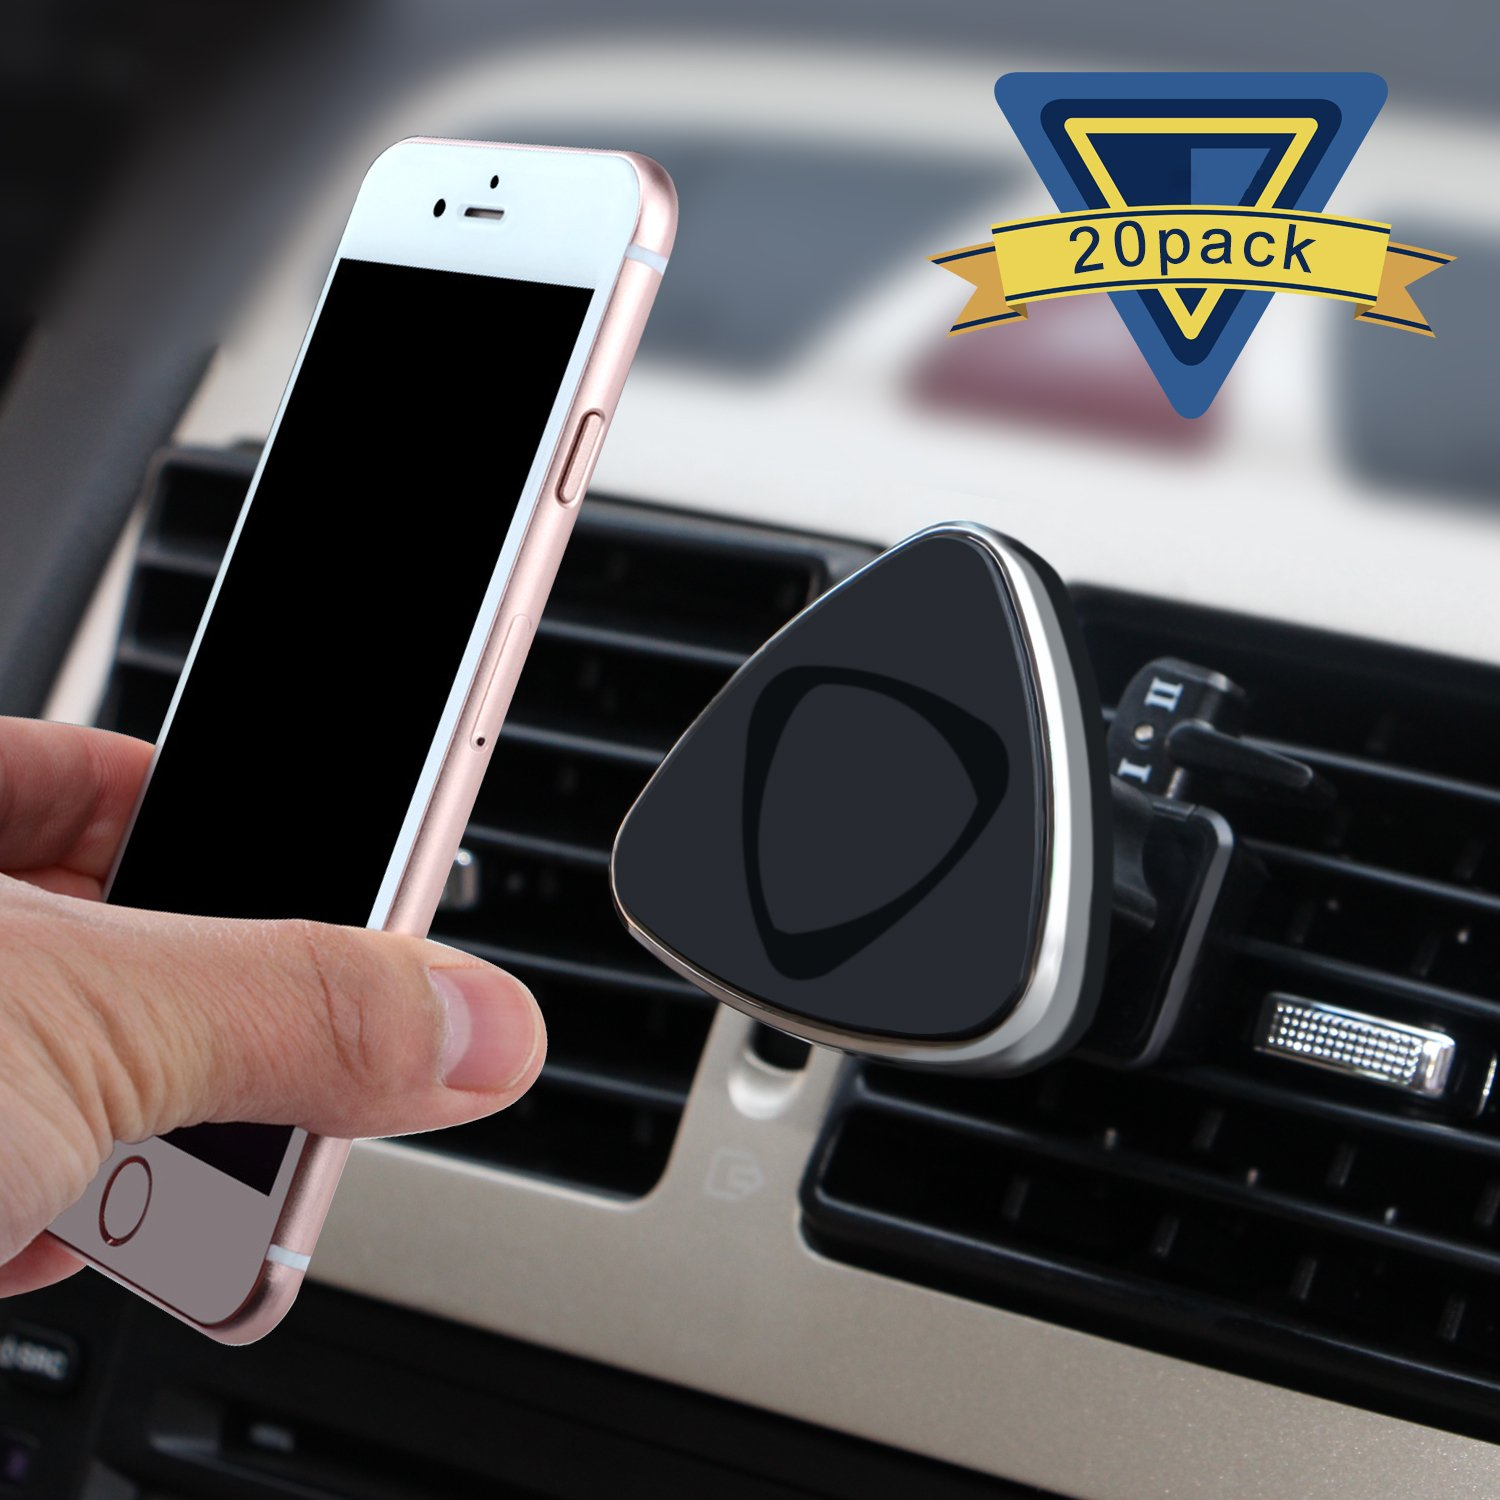 Car Mount, ilikable 20 Pack Air Vent Magnetic Car Holder 360 Degree Rotation Car Cradle for Smartphone iPhone Android GPS-Black